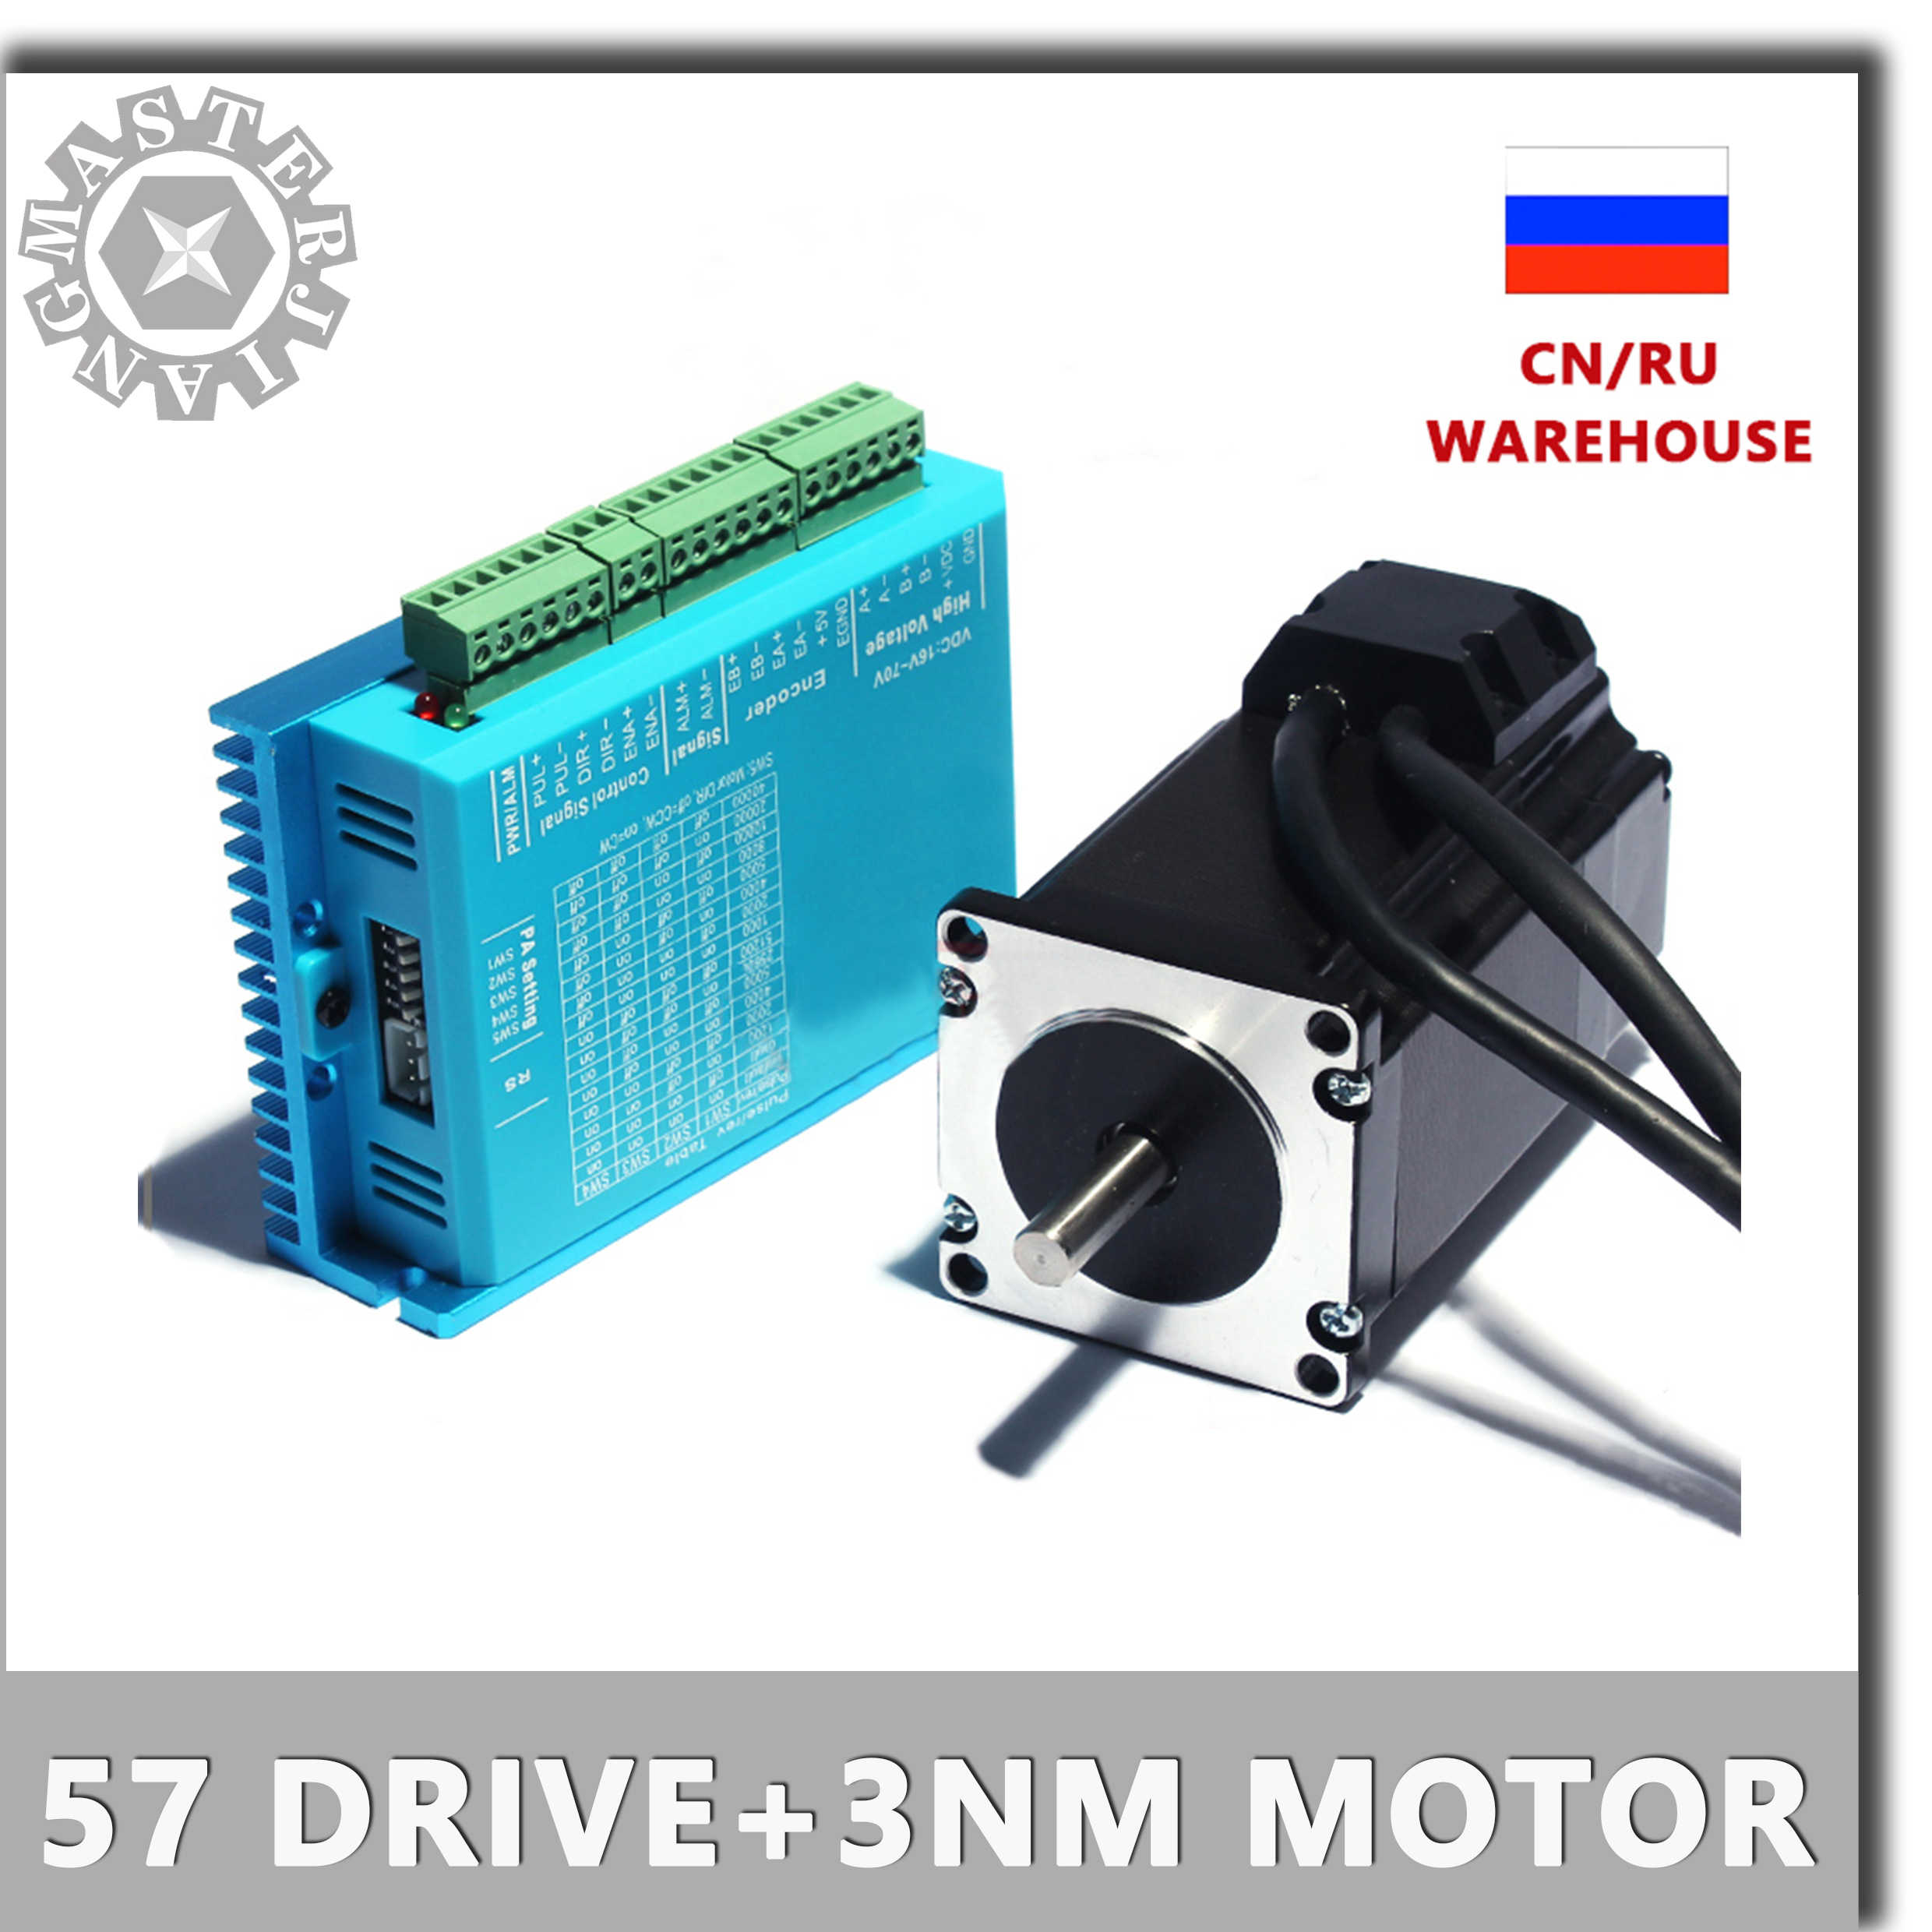 Nema 23 Stepper Motor Driver 3nm Servo Motor 57HSE3N+HBS57 Closed-loop step motor 3NM 57 Hybrid closed loop 2-phase.